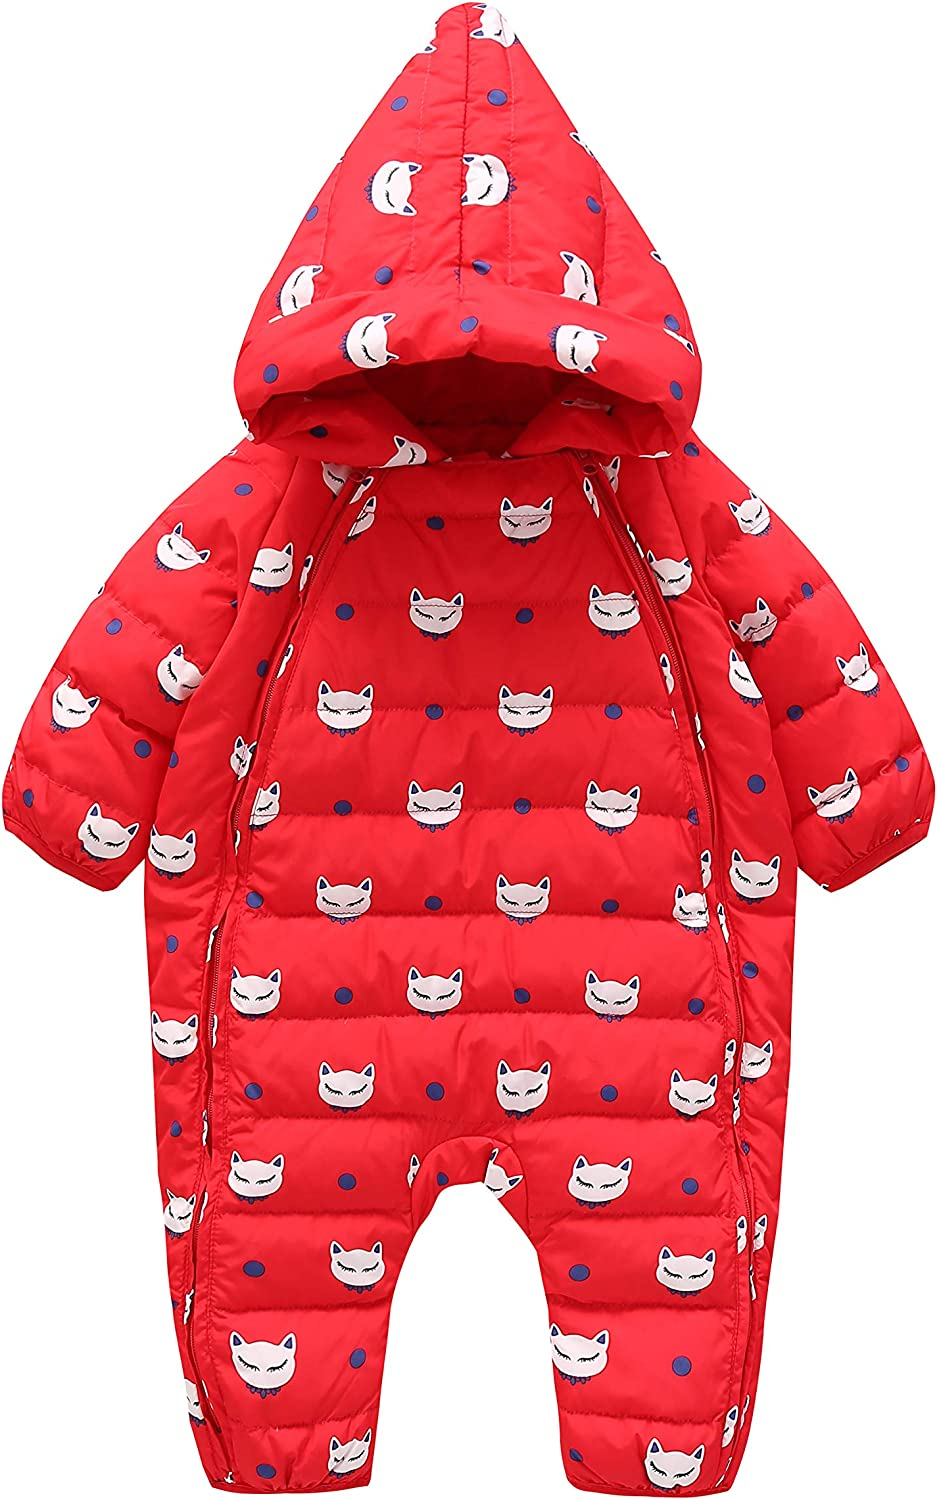 Cnajii Baby Infant Boy Girl Winter Down Snowsuit Warm Hooded Jumpsuit